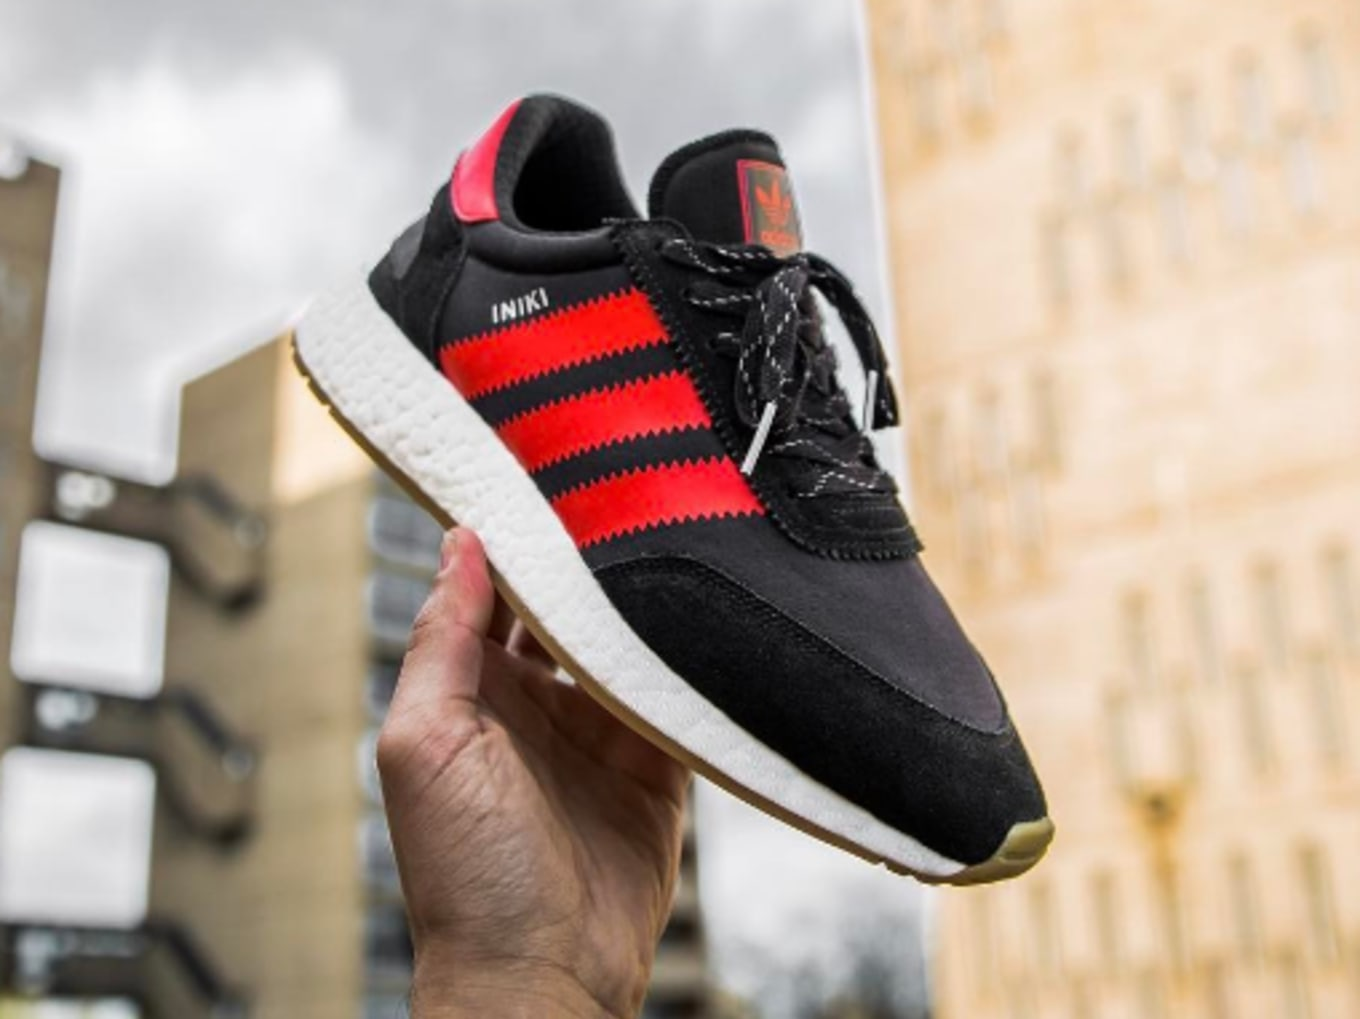 e3cba92fee6 These Adidas Iniki Runners Won t Be Easy to Get